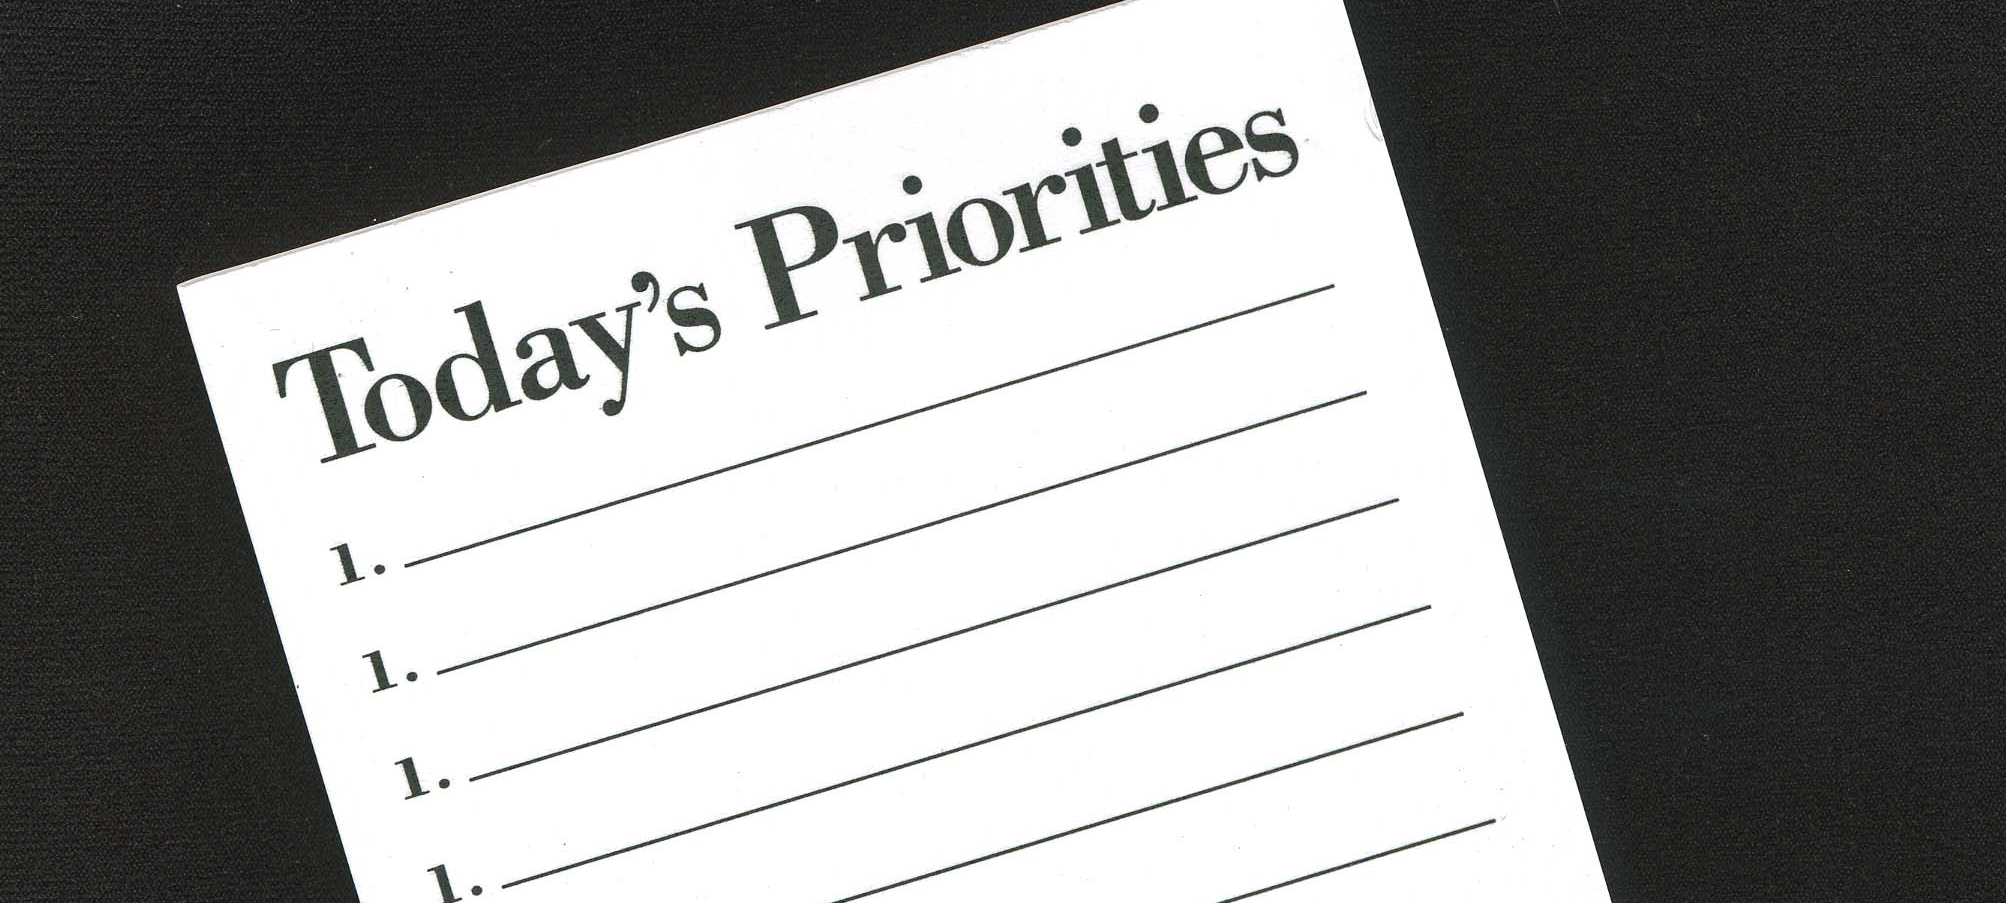 Are your priorities in order?